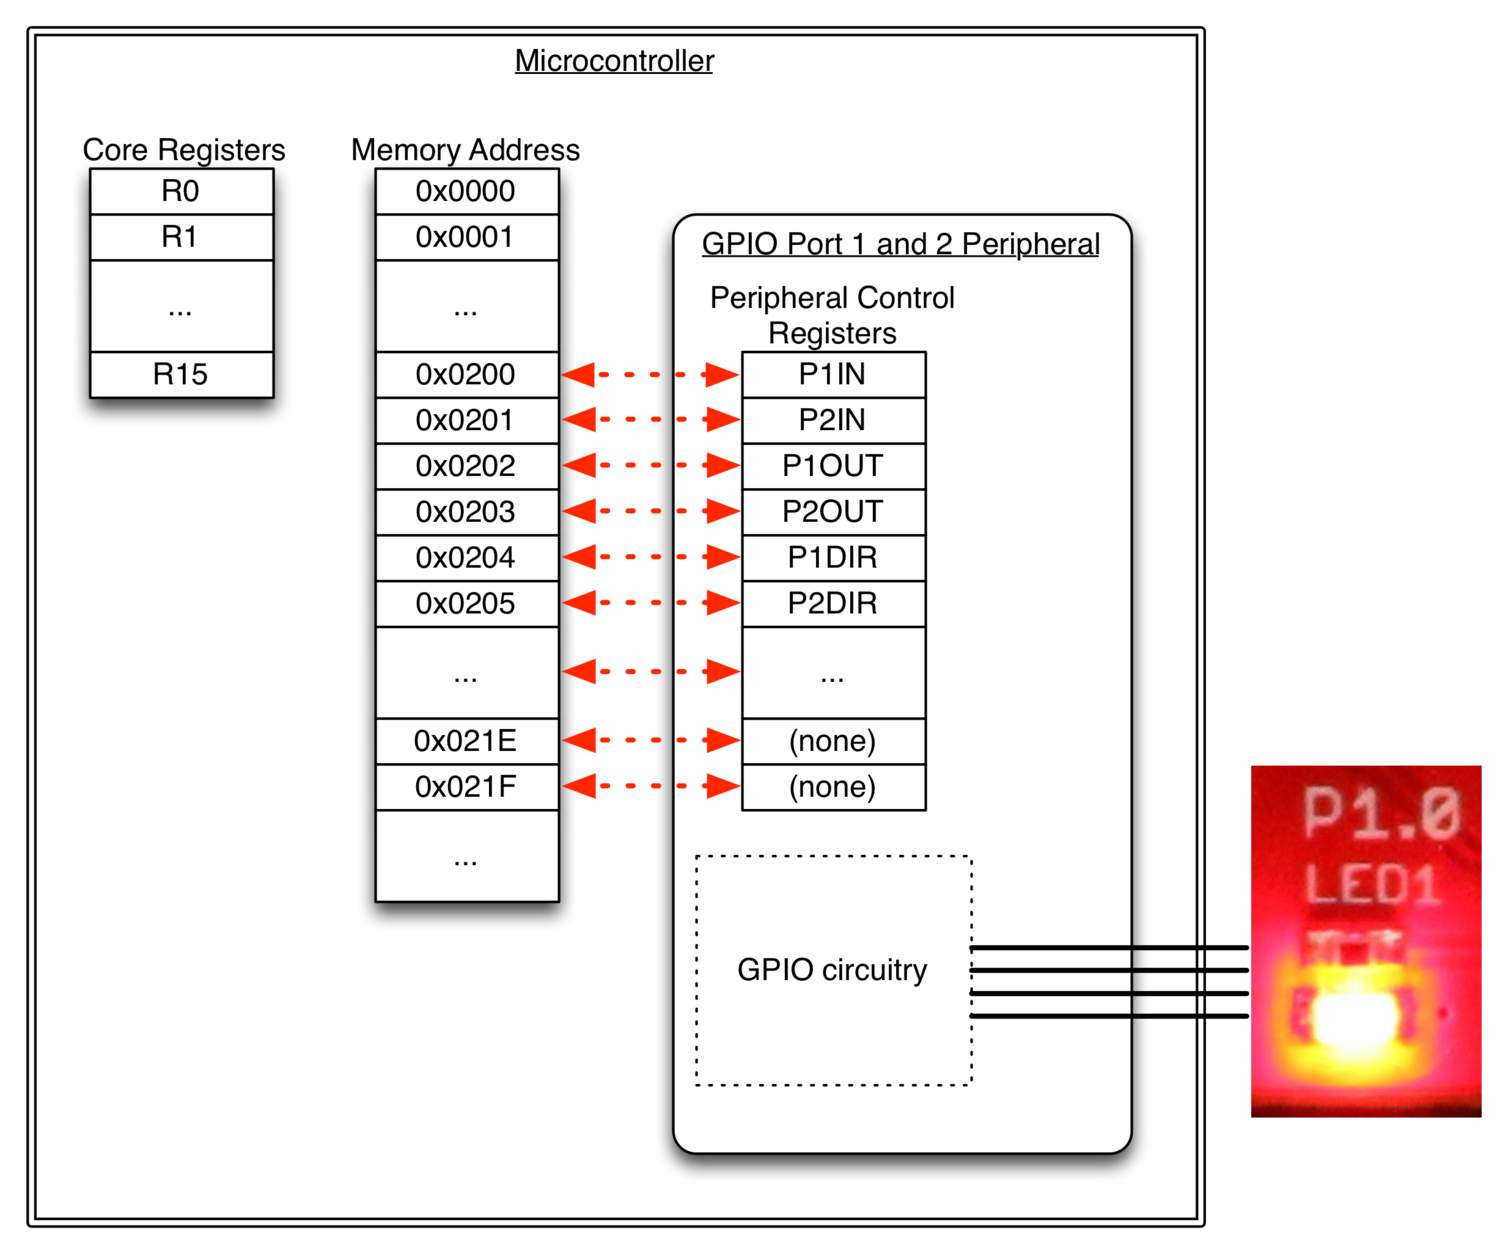 ESE101: Microcontroller Peripherals, GPIOs, and Blinking